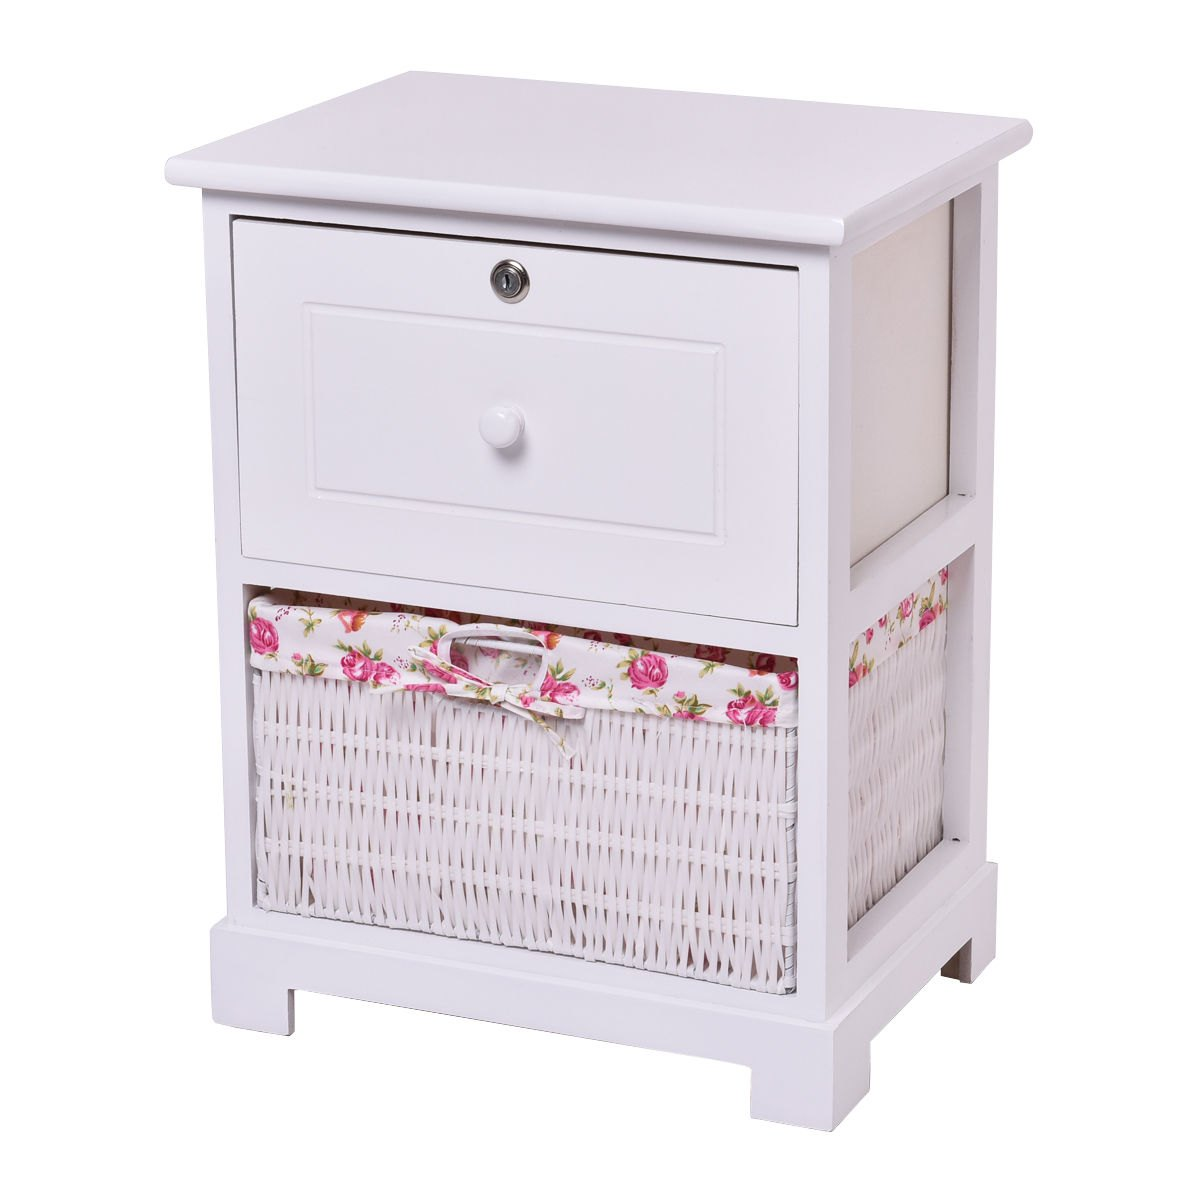 way white end side accent table night stand locked with basket drawers drawer wooden garden ikea lack coffee small armchairs for spaces plant pedestal round black glass marble set